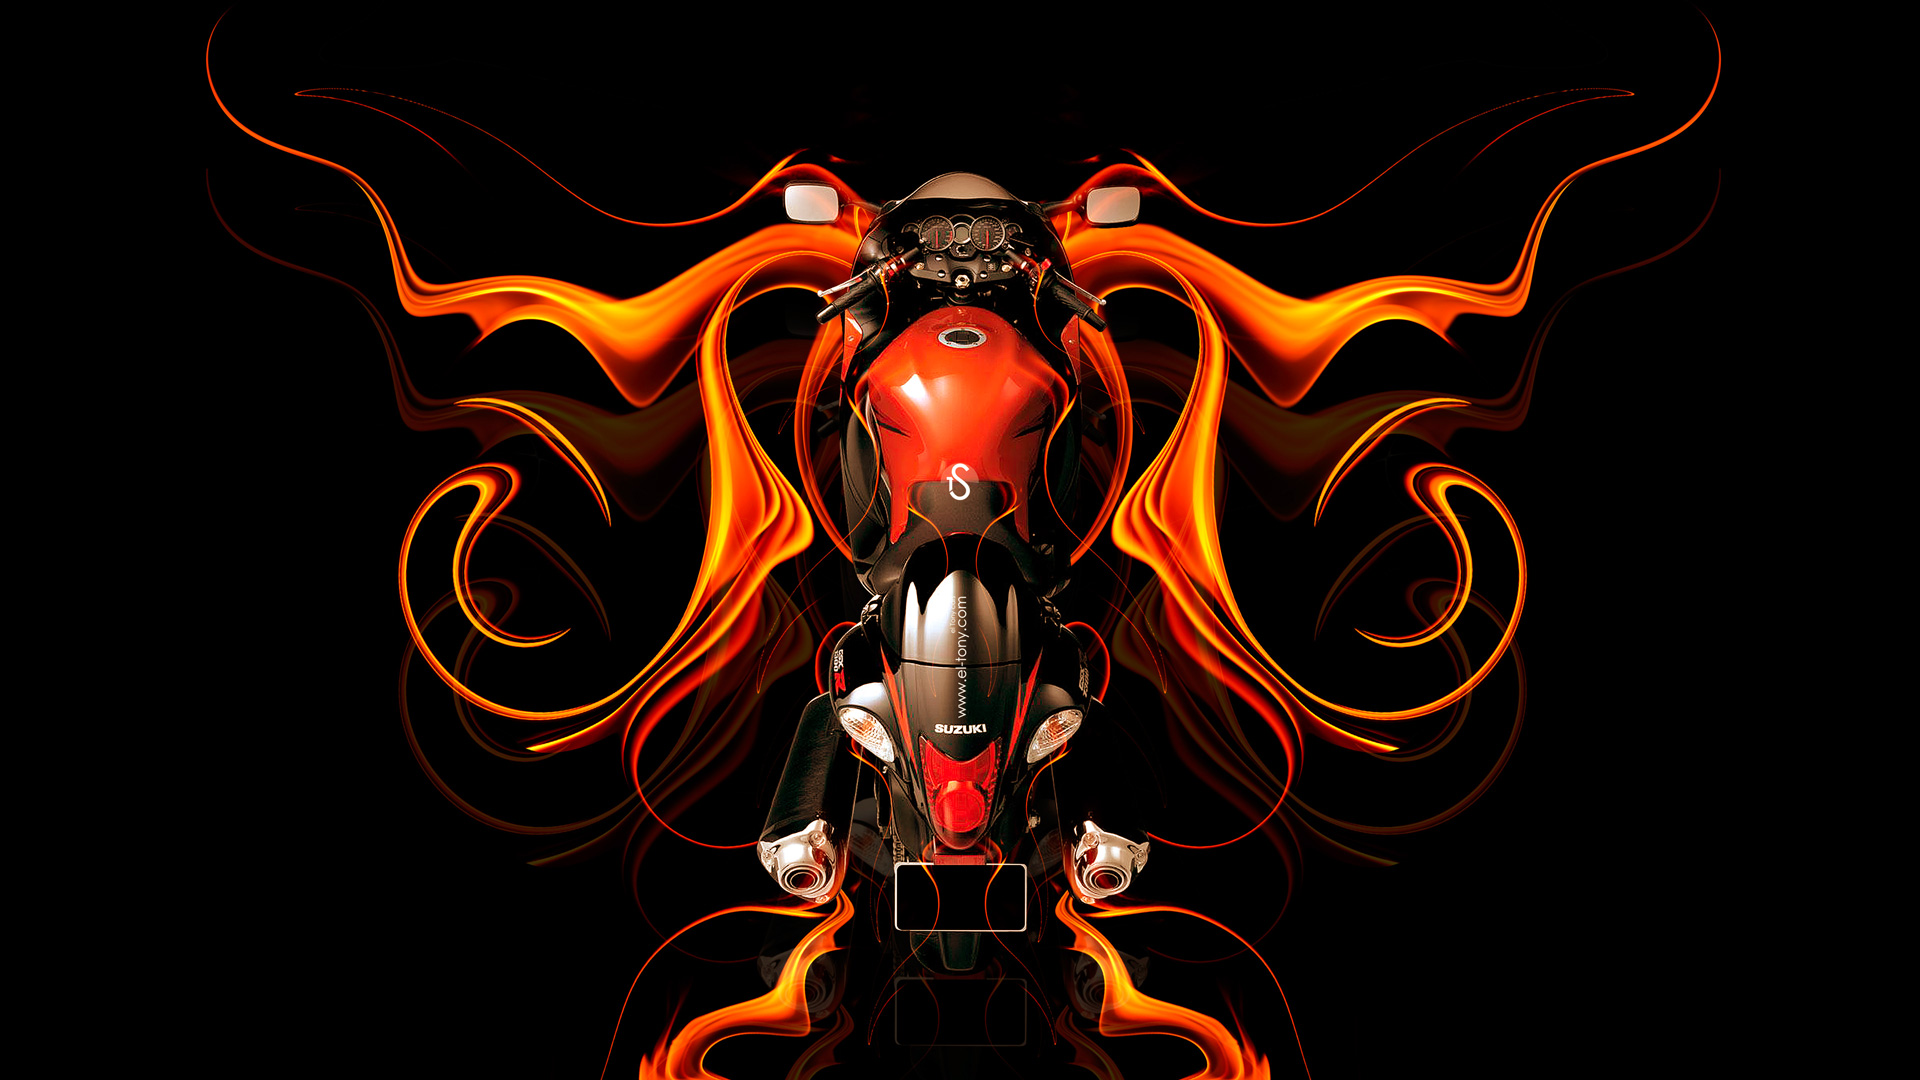 Bon Moto Suzuki Hayabusa BackUp Super Fire Abstract Bike